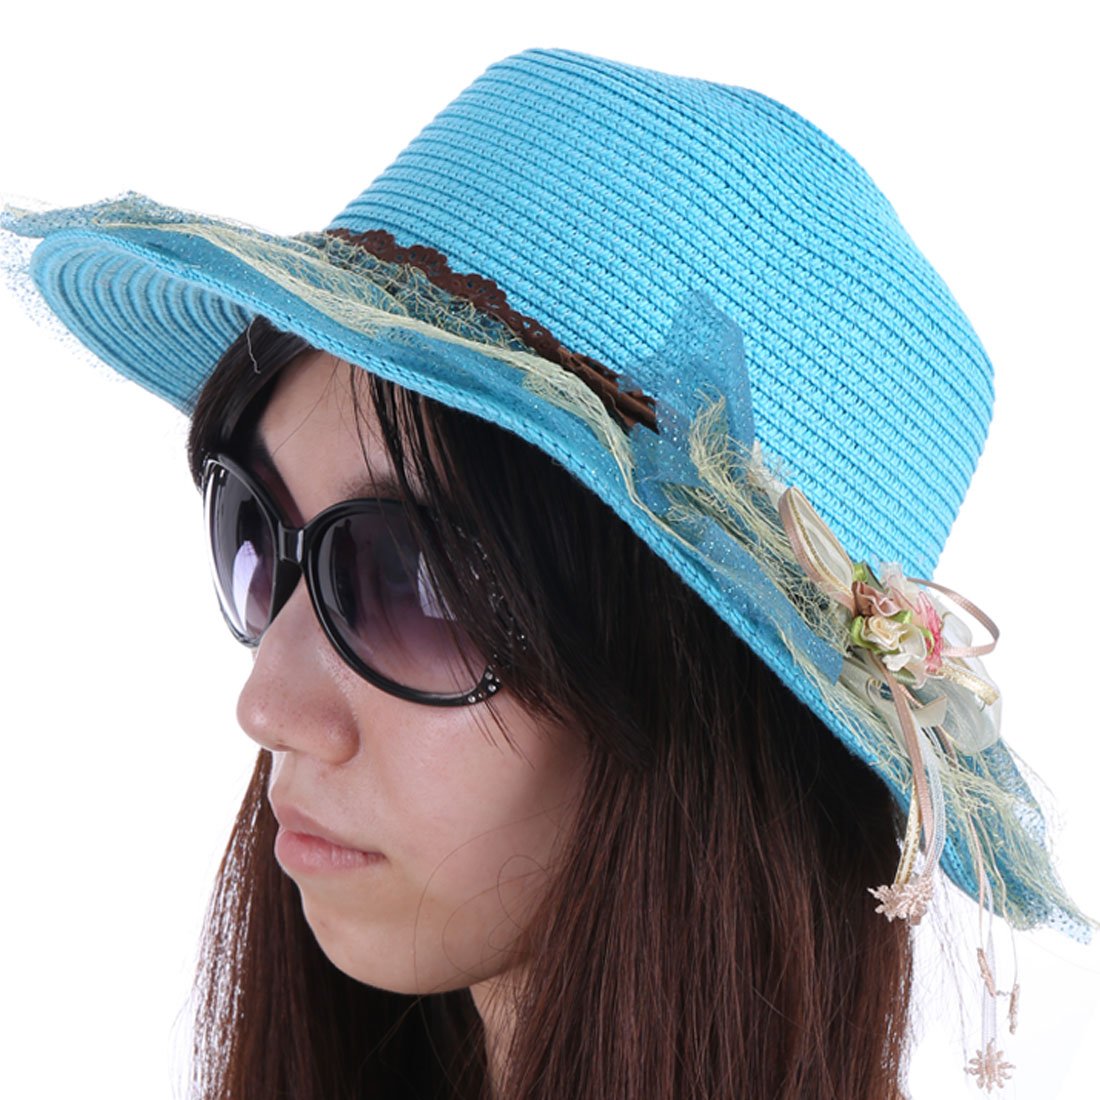 Ladies Tiered Mesh Covered Bowtie Flower Decor Sky Blue Dark Blue Straw Hat